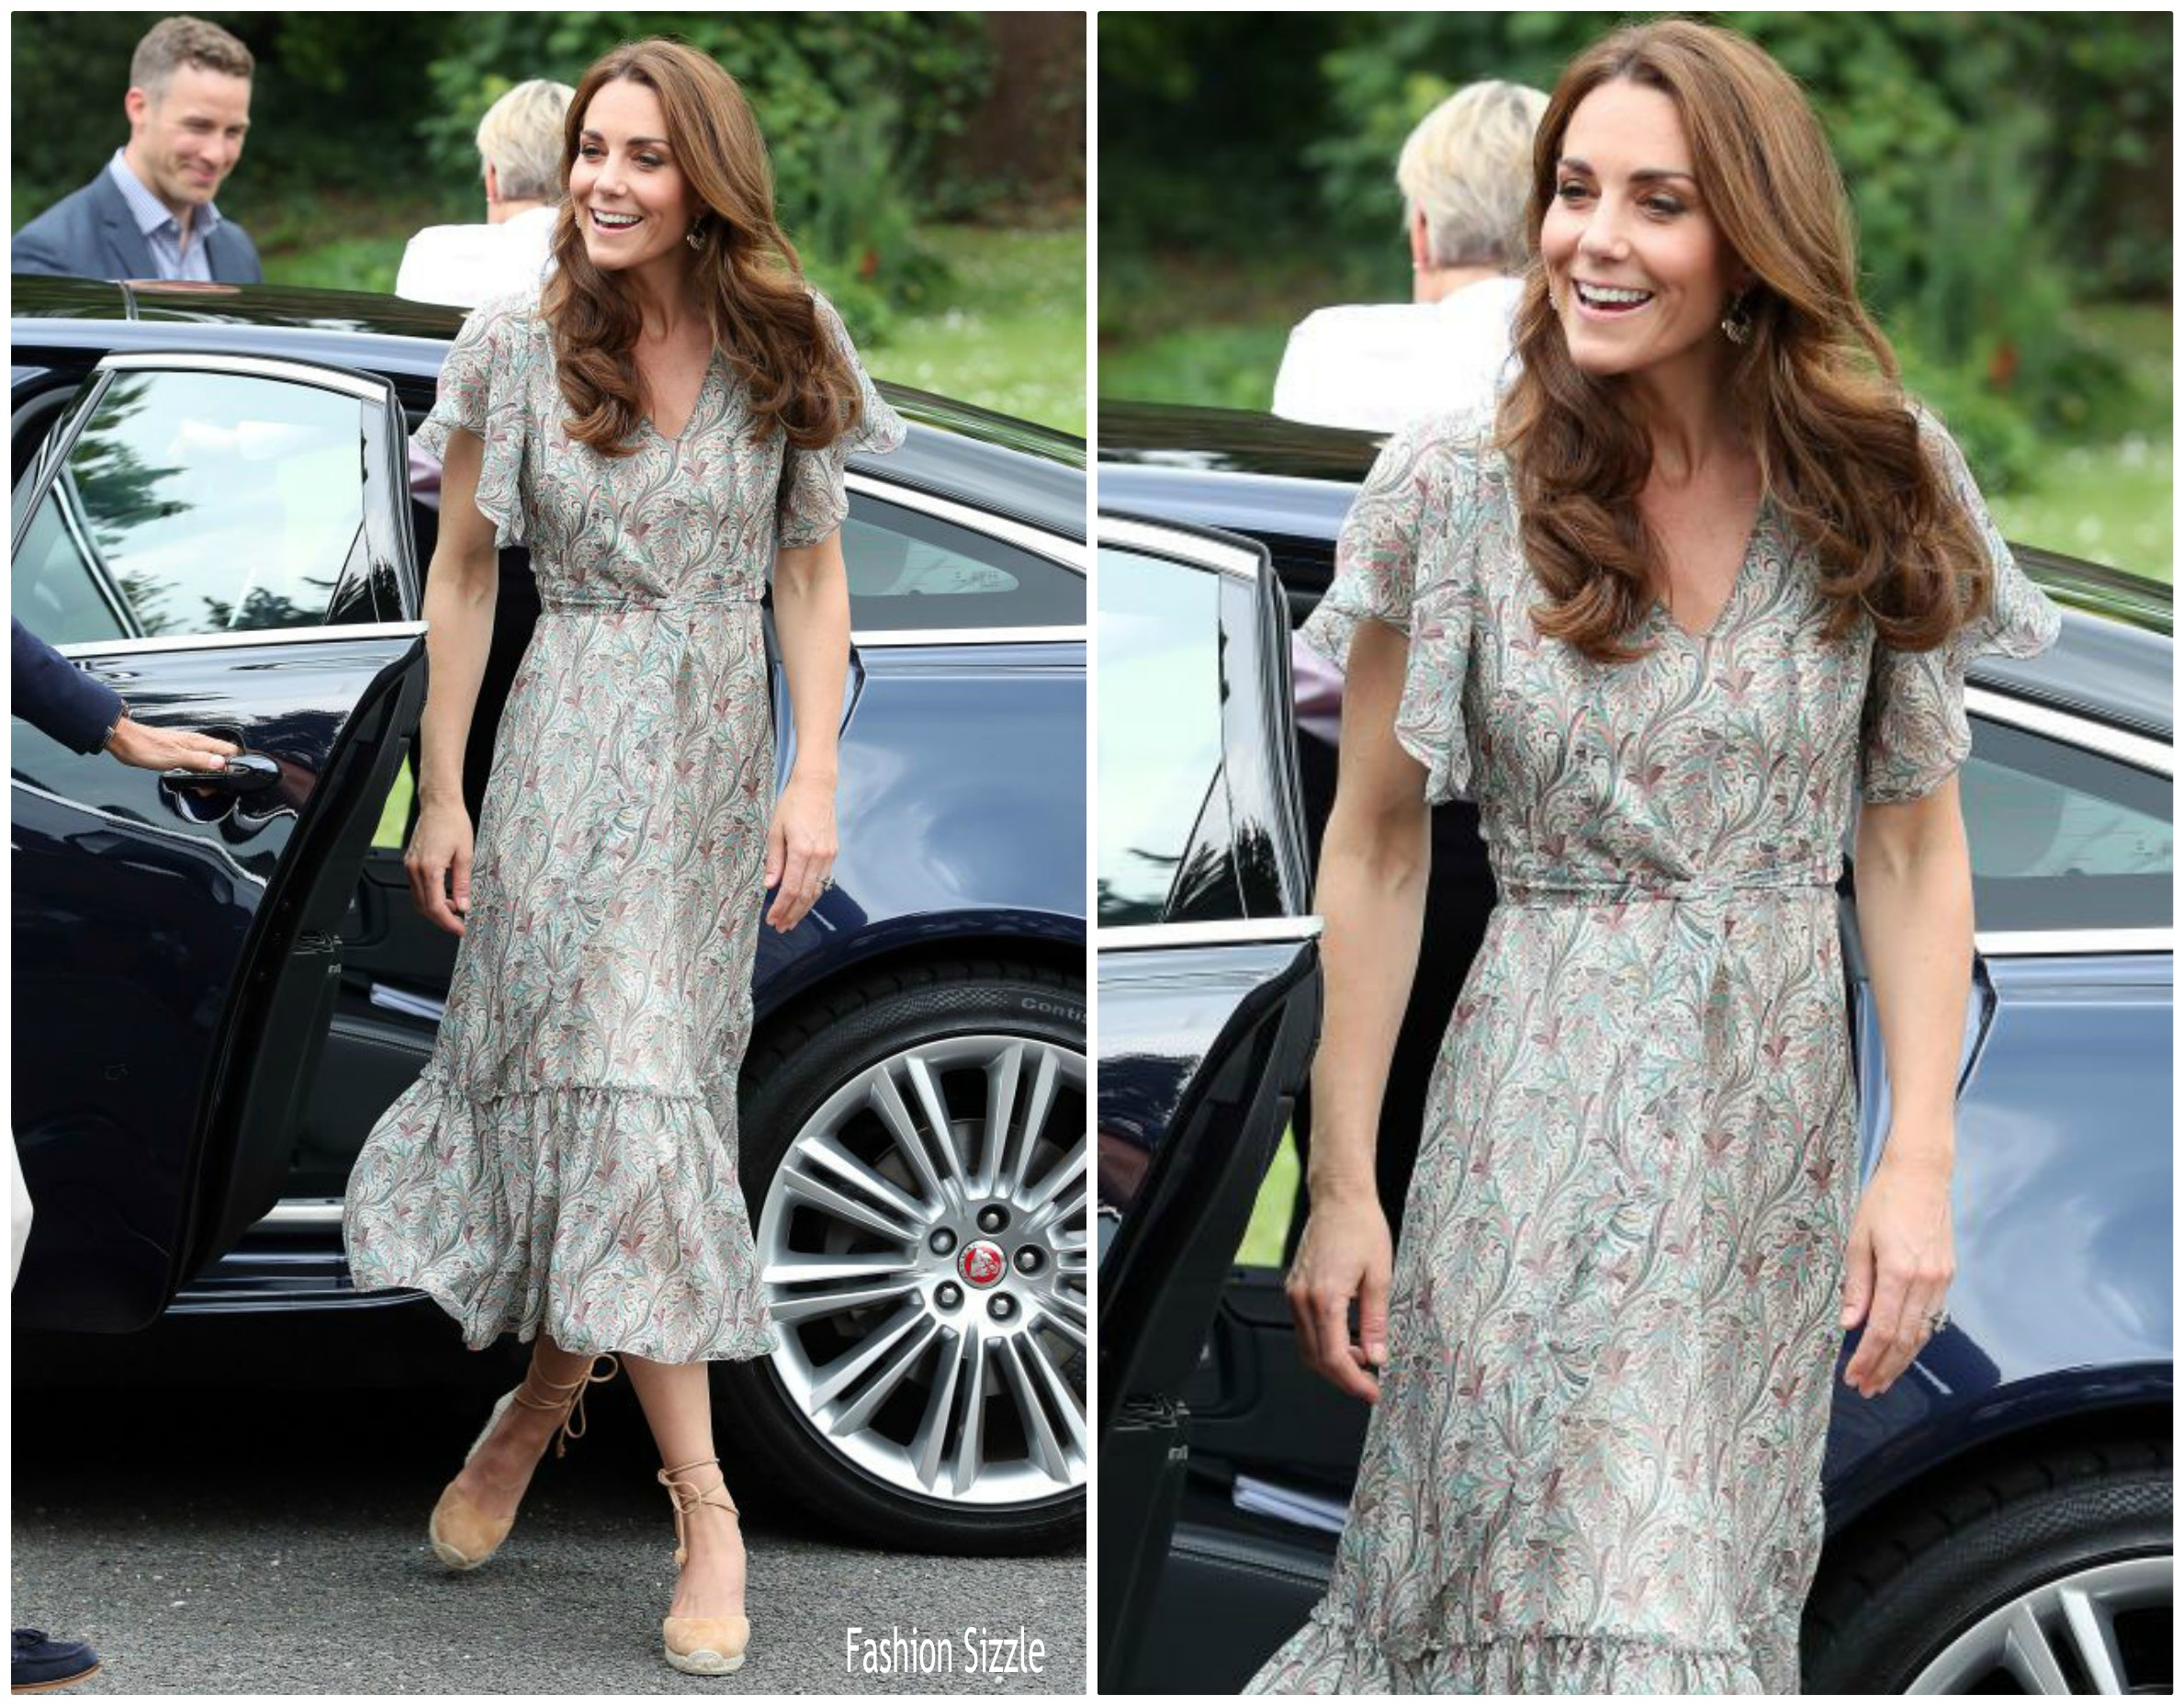 catherine-duchess-of-cambridge-in-ridley-london-the-royal-photographic-society